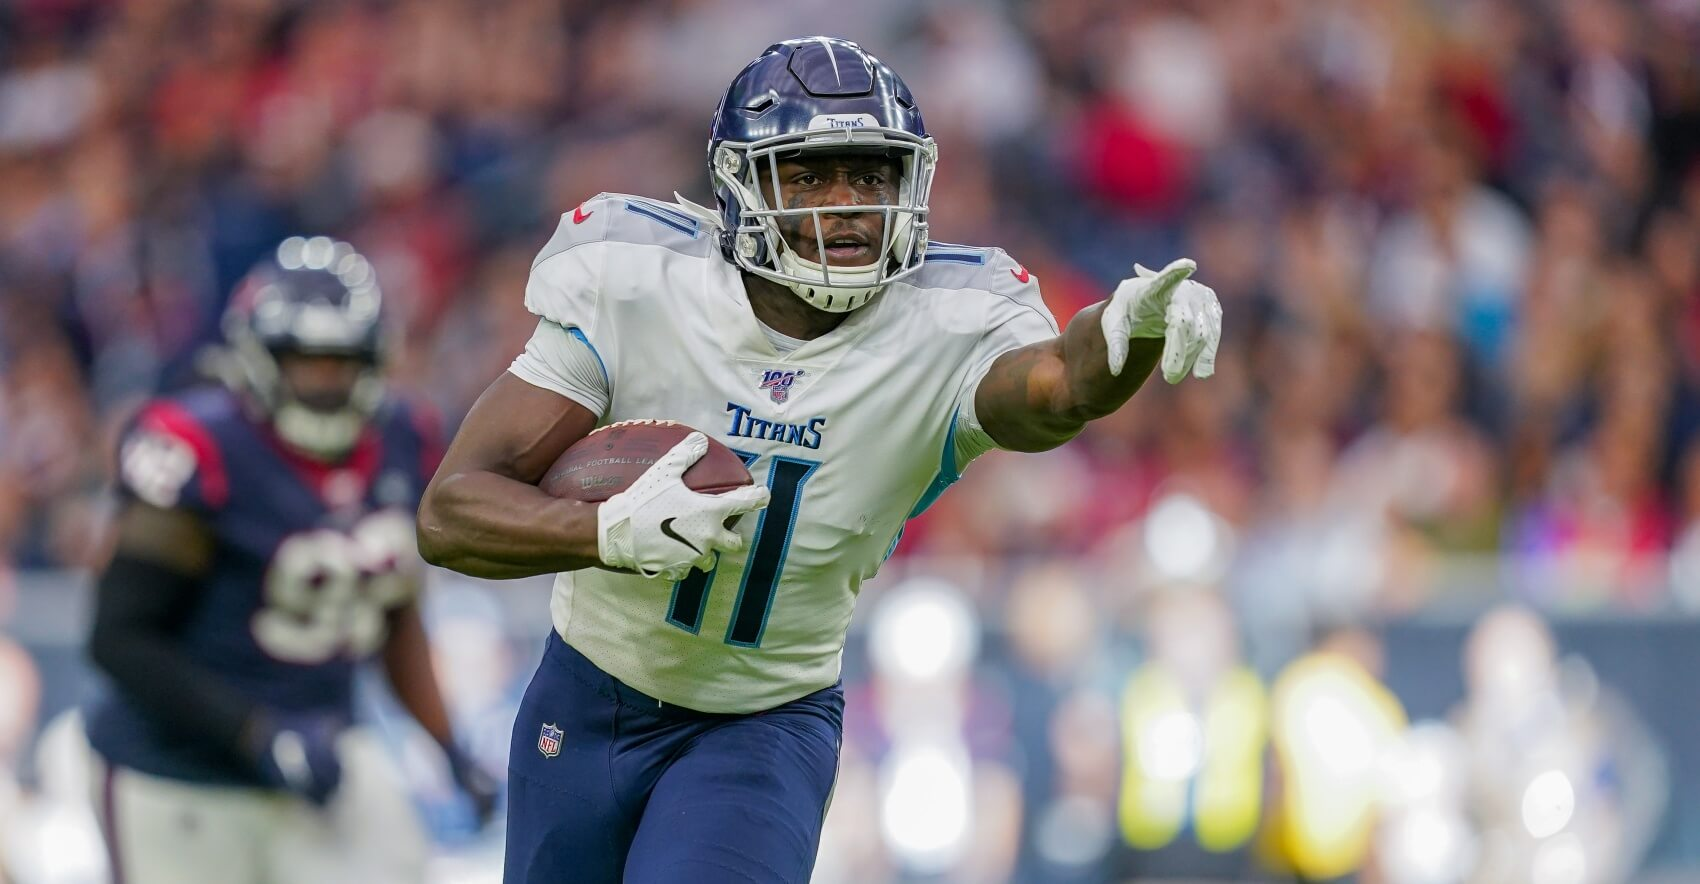 Fantasy Footballers Podcast Recap: The TRUTH about Second Tier WRs in 2019